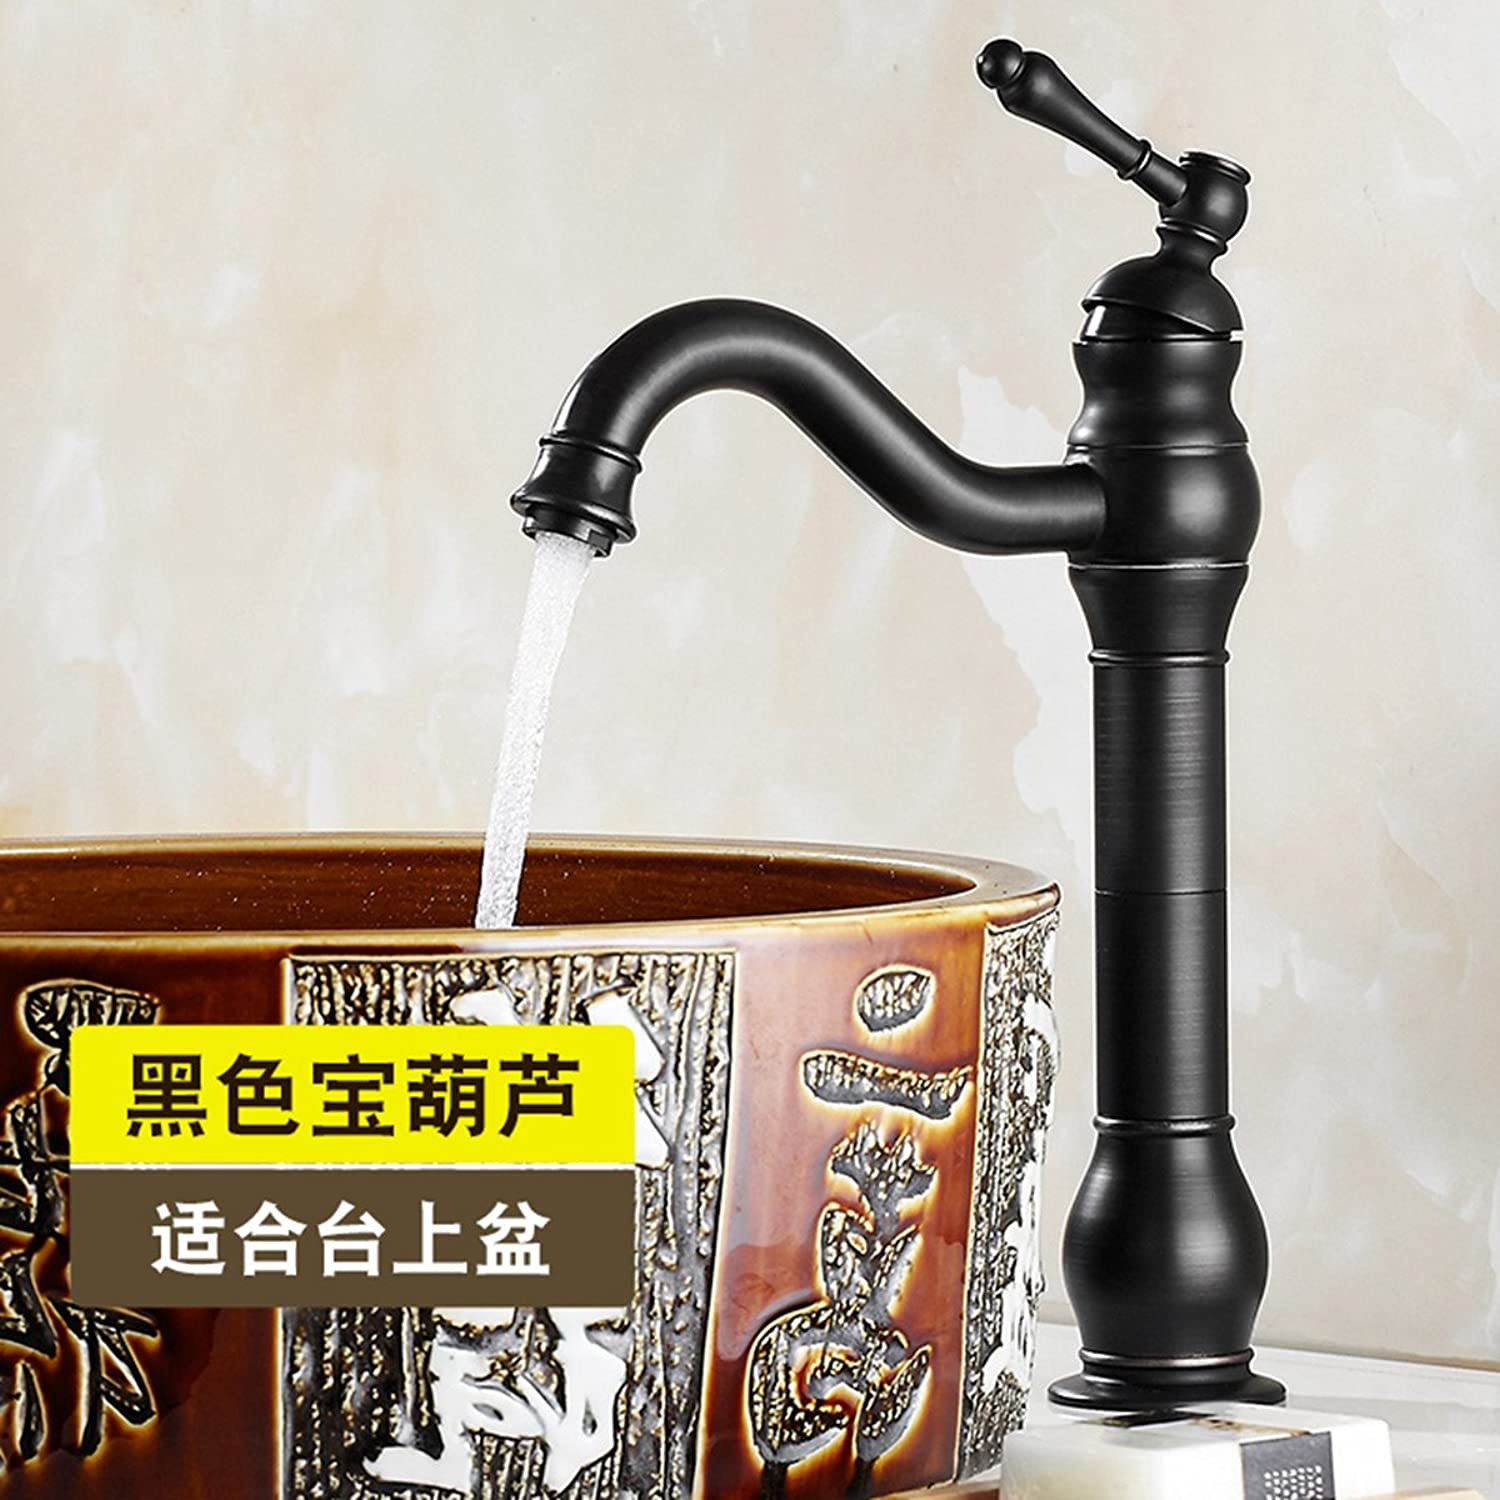 Bijjaladeva Bathroom Sink Vessel Faucet Basin Mixer Tap on black vanity area with sink water faucet hand wash basin faucet antique high, hot and cold water faucets copper single ho